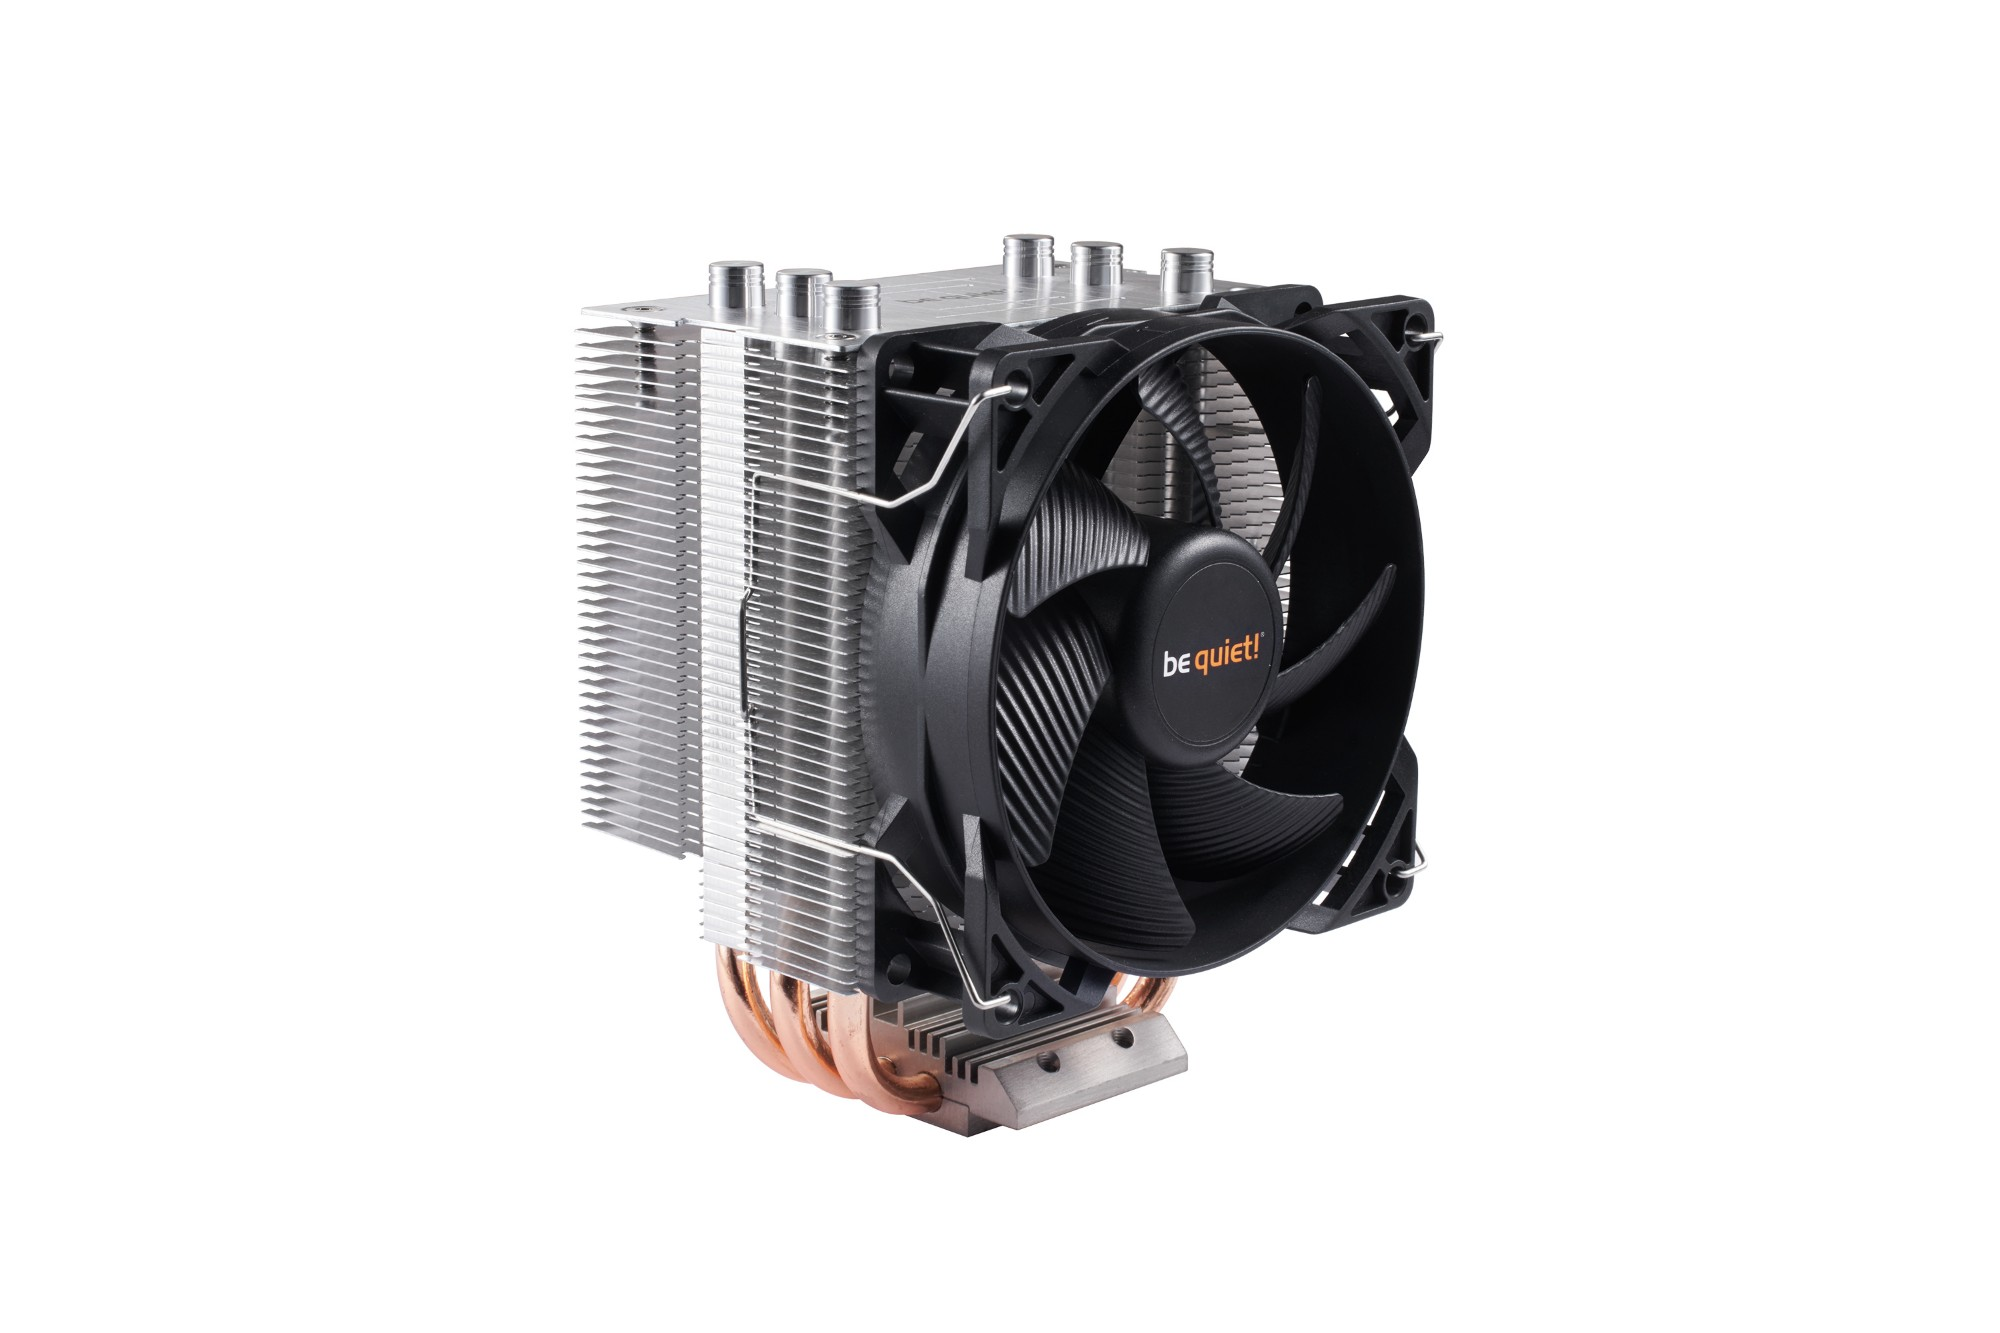 be quiet! Pure Rock Slim Processor Cooler 9.2 cm Black, Copper, Silver